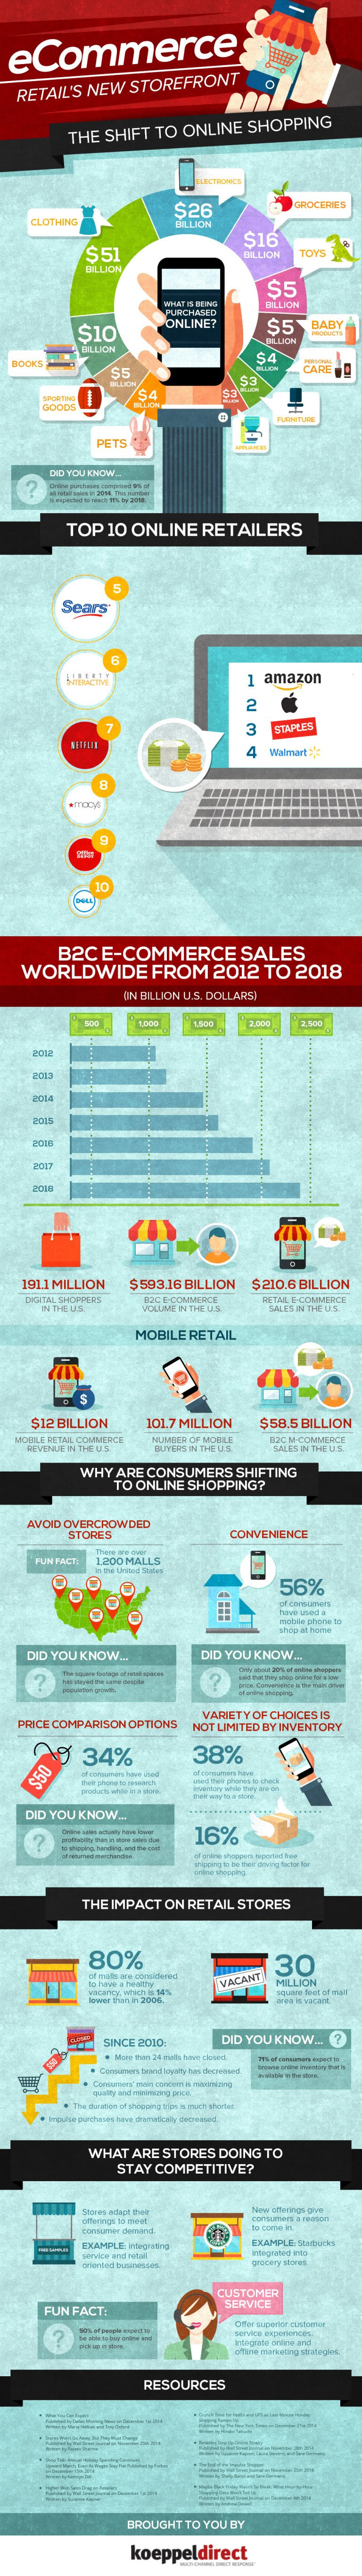 Ecommerce: Retail's New Storefront Infographic